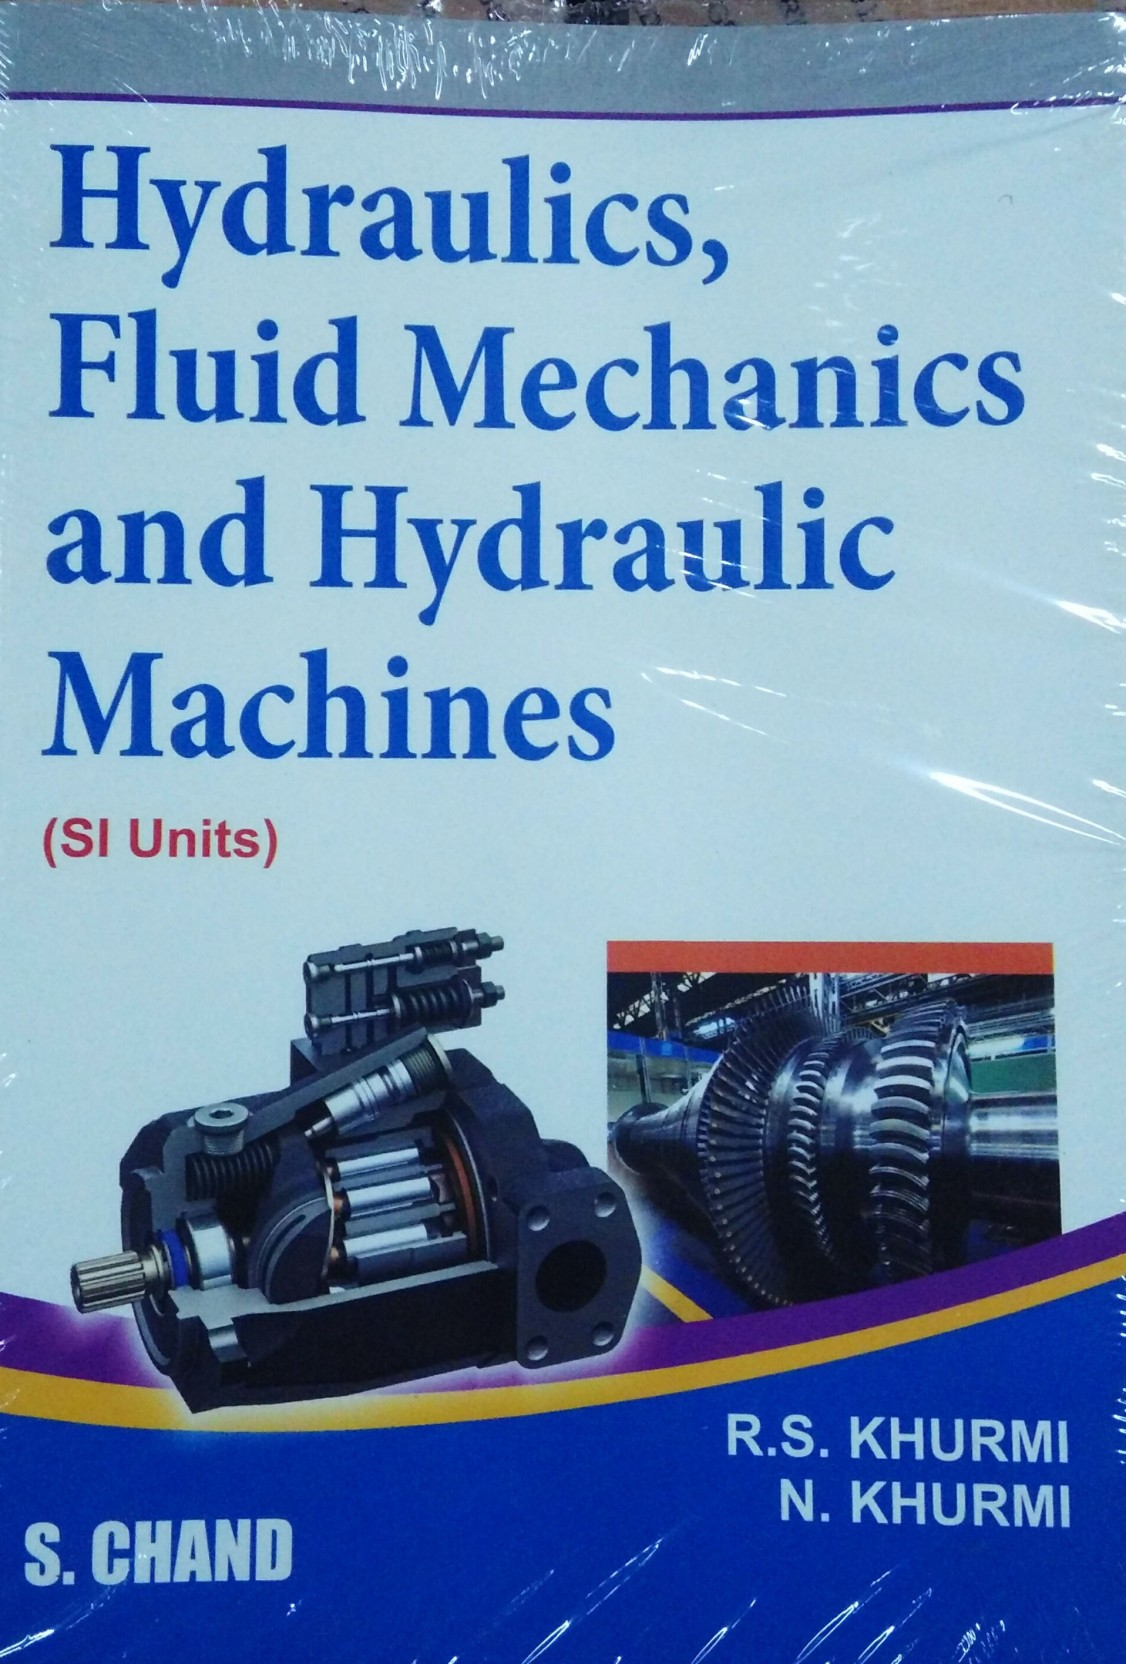 thermal mechanical and hydraulic design of Machine design by rs khurmi contains 32 chapters and total 1251 pages this referance book is helpfull though out your graduation mechanical subjects like machine design and industrial drafting, machnie design -1, machine design -2 and dynamics of mechanics.